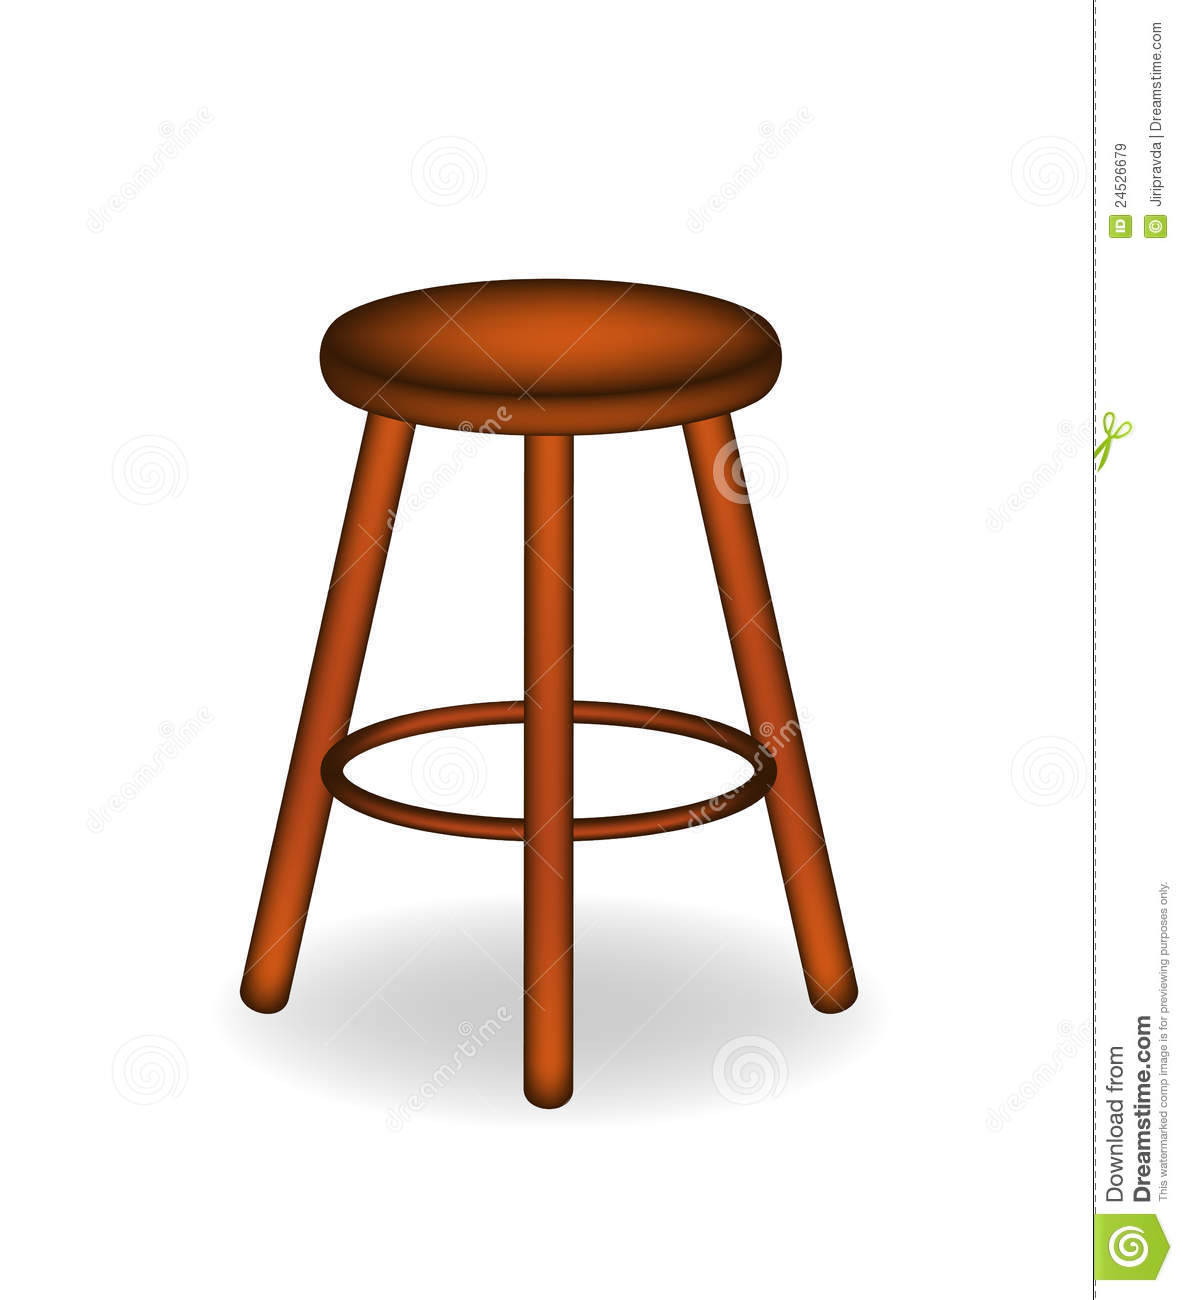 Retro wooden stool stock vector Image of interior wooden  : retro wooden stool 24526679 from www.dreamstime.com size 1183 x 1300 jpeg 71kB